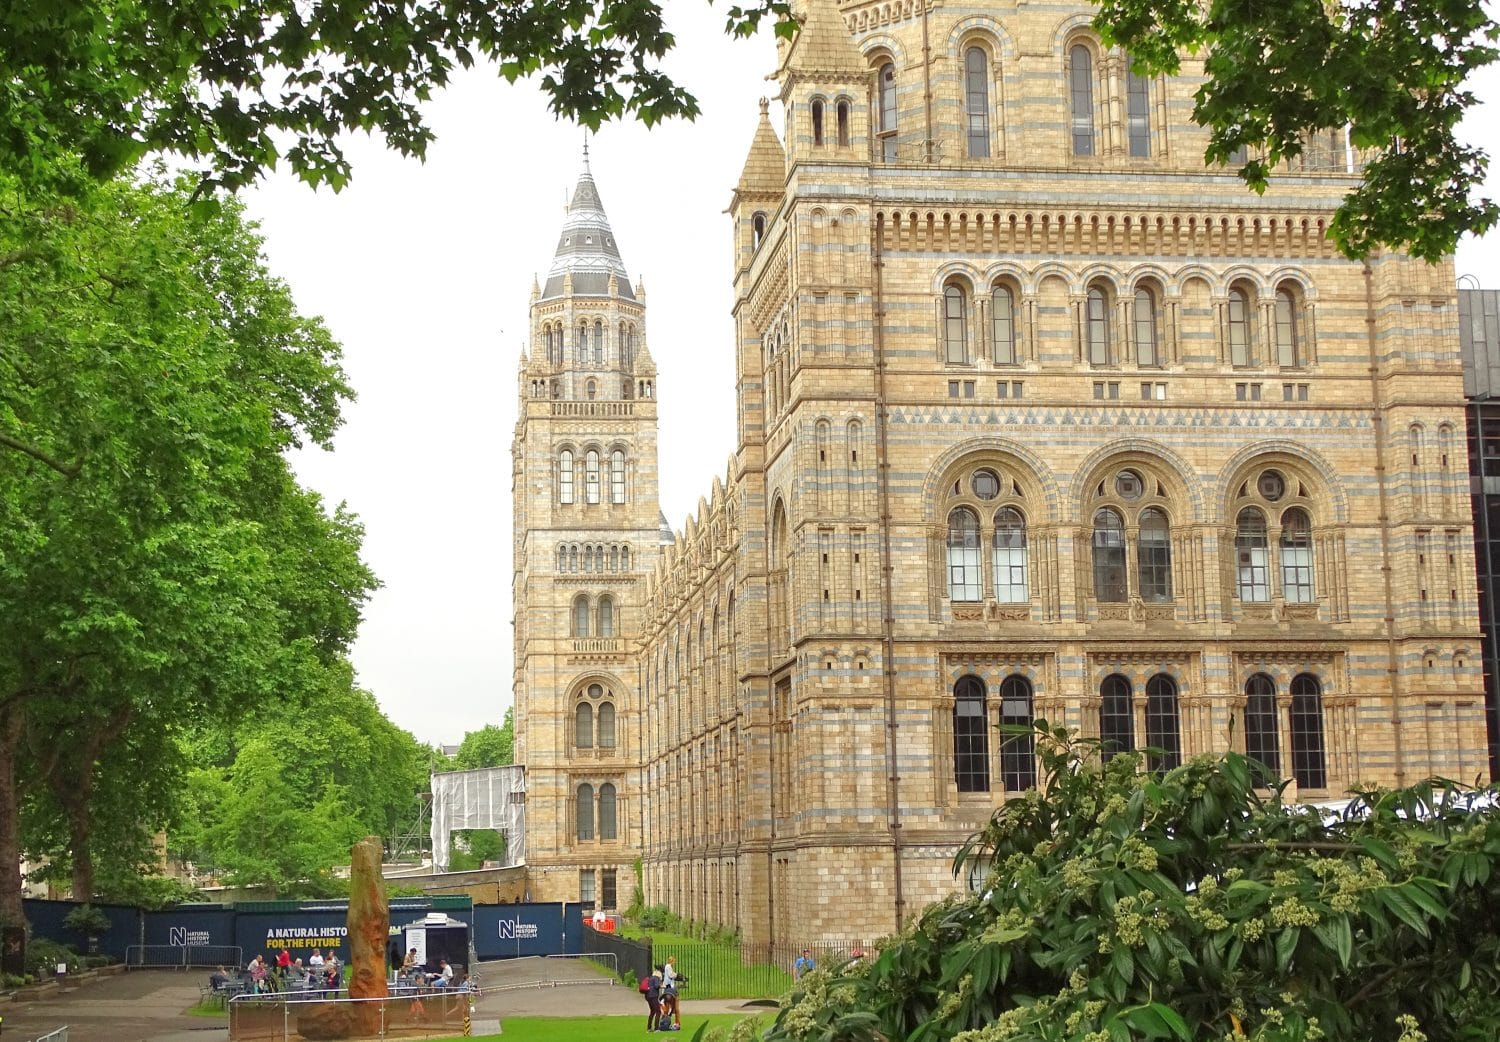 Free entrance to the Natural History Museum